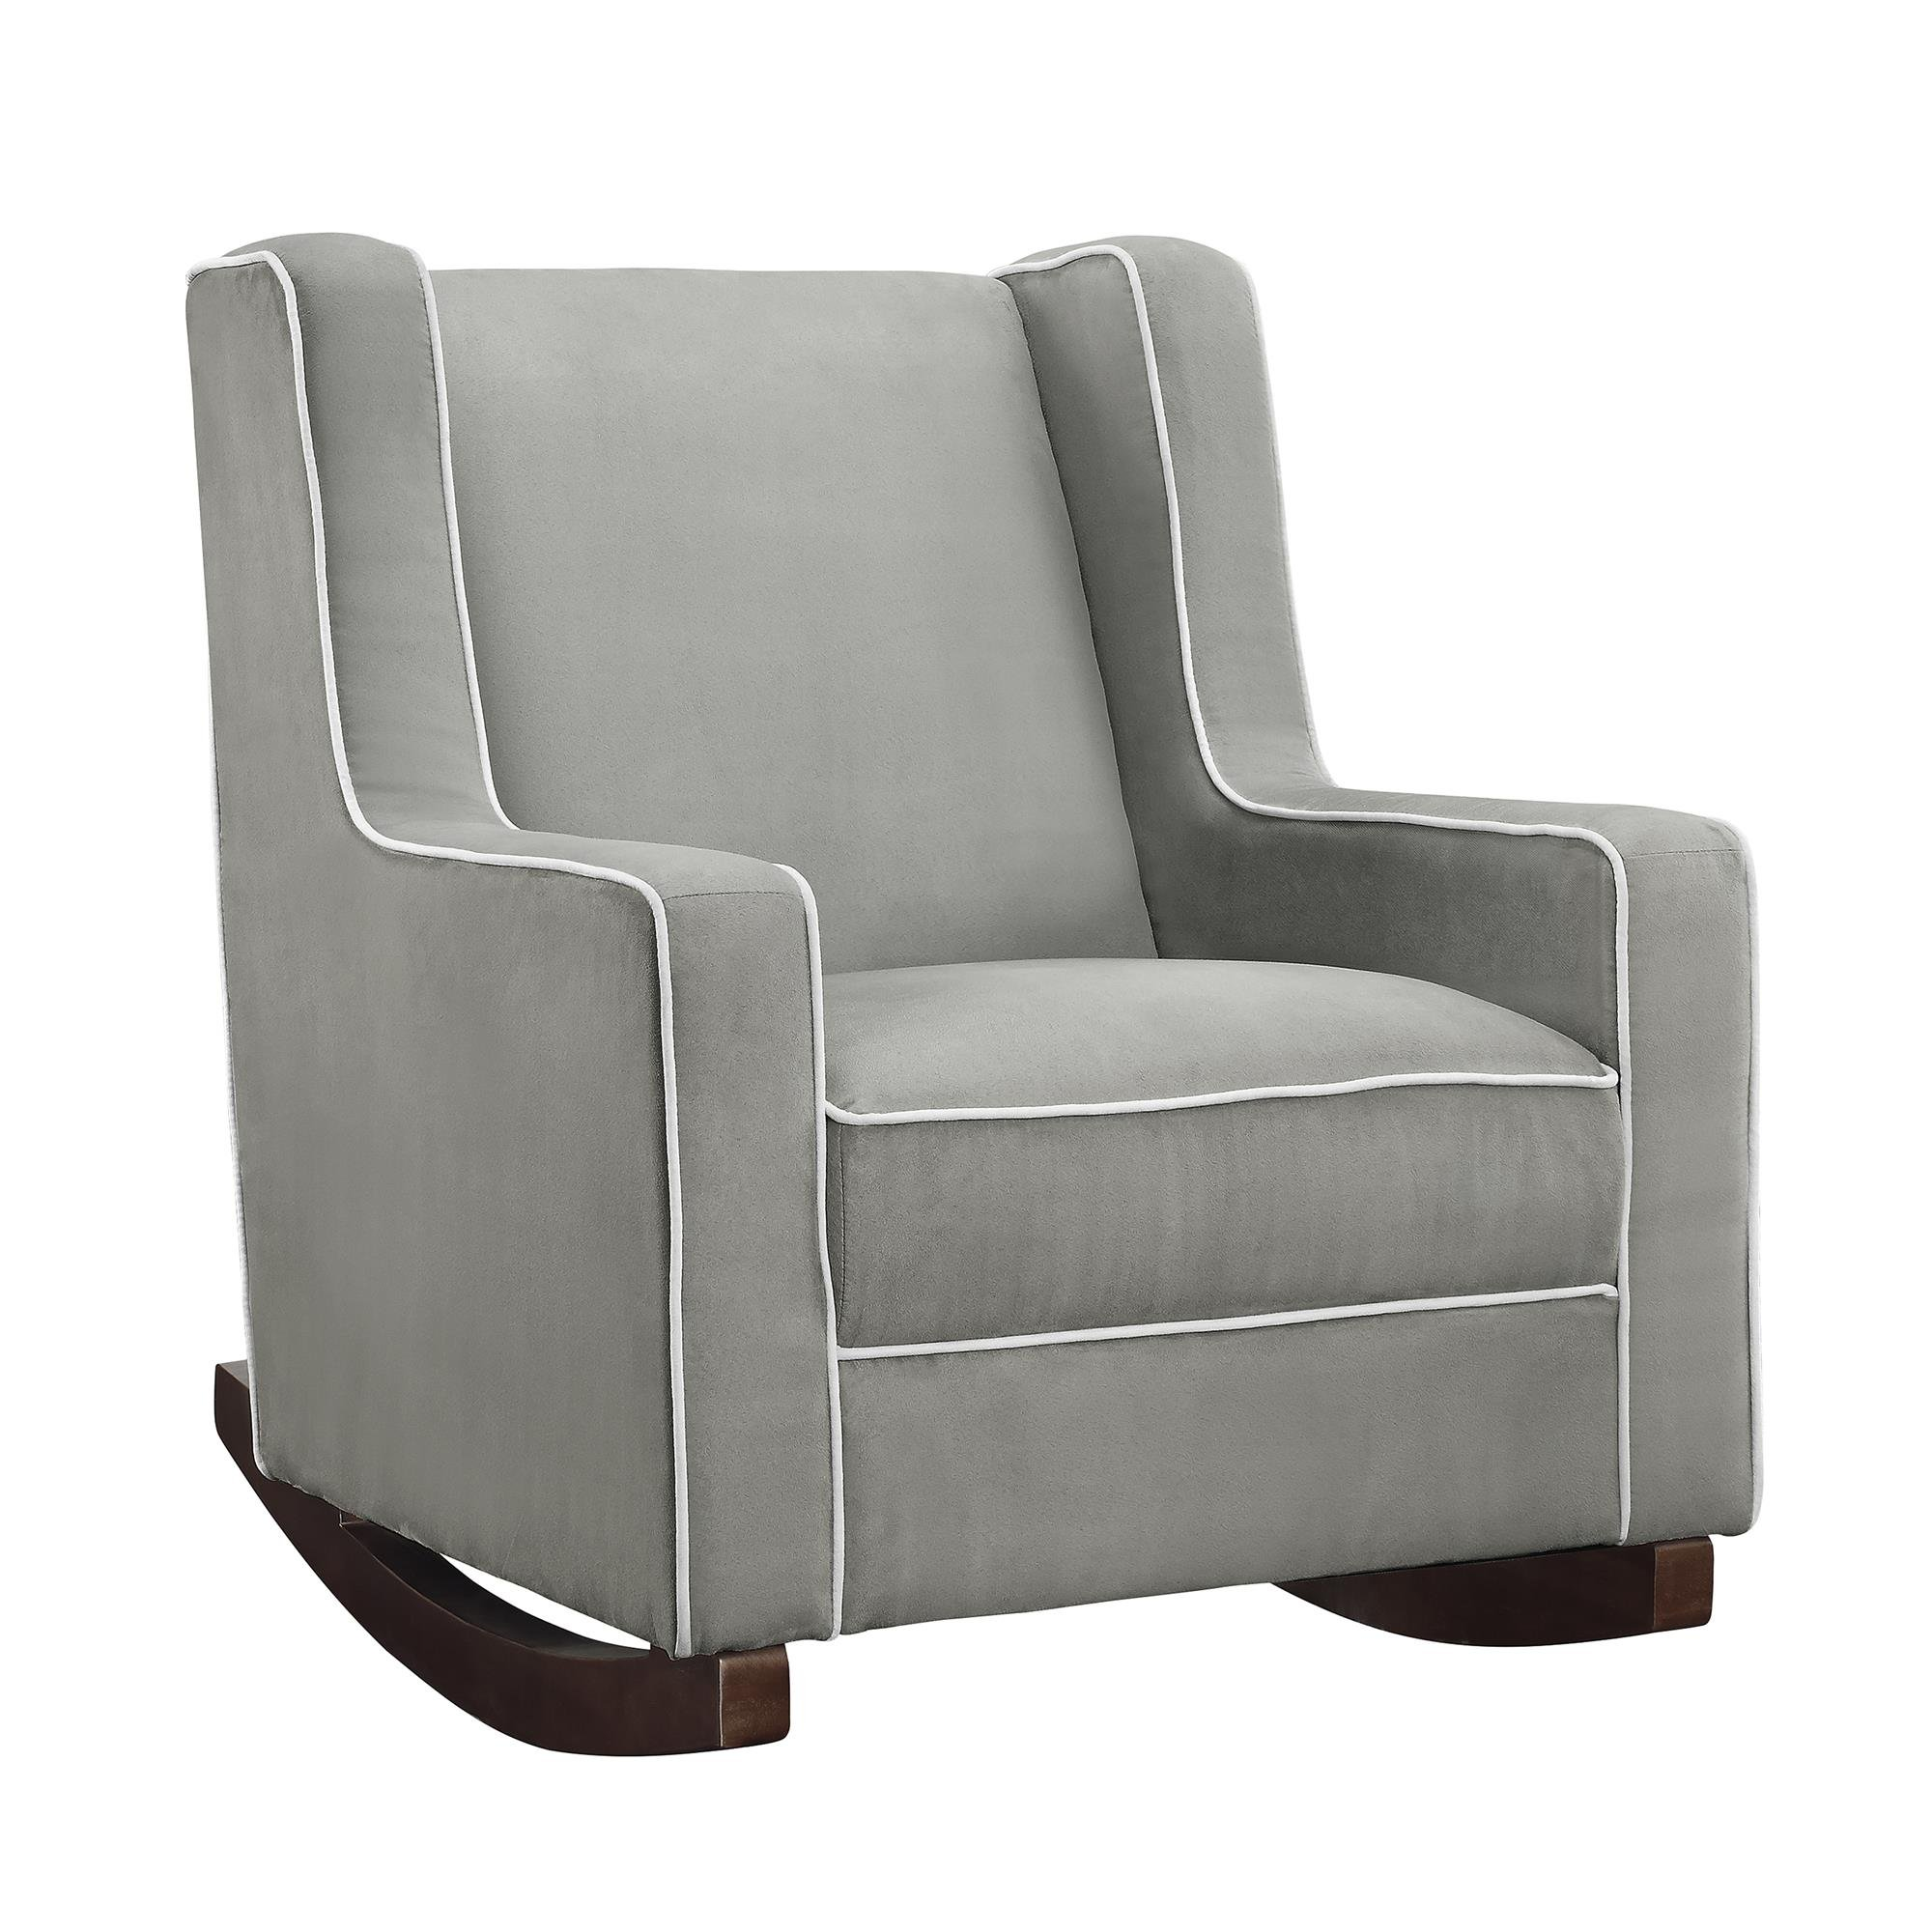 Baby Relax Abby Rocker, Gray - Color: One Color